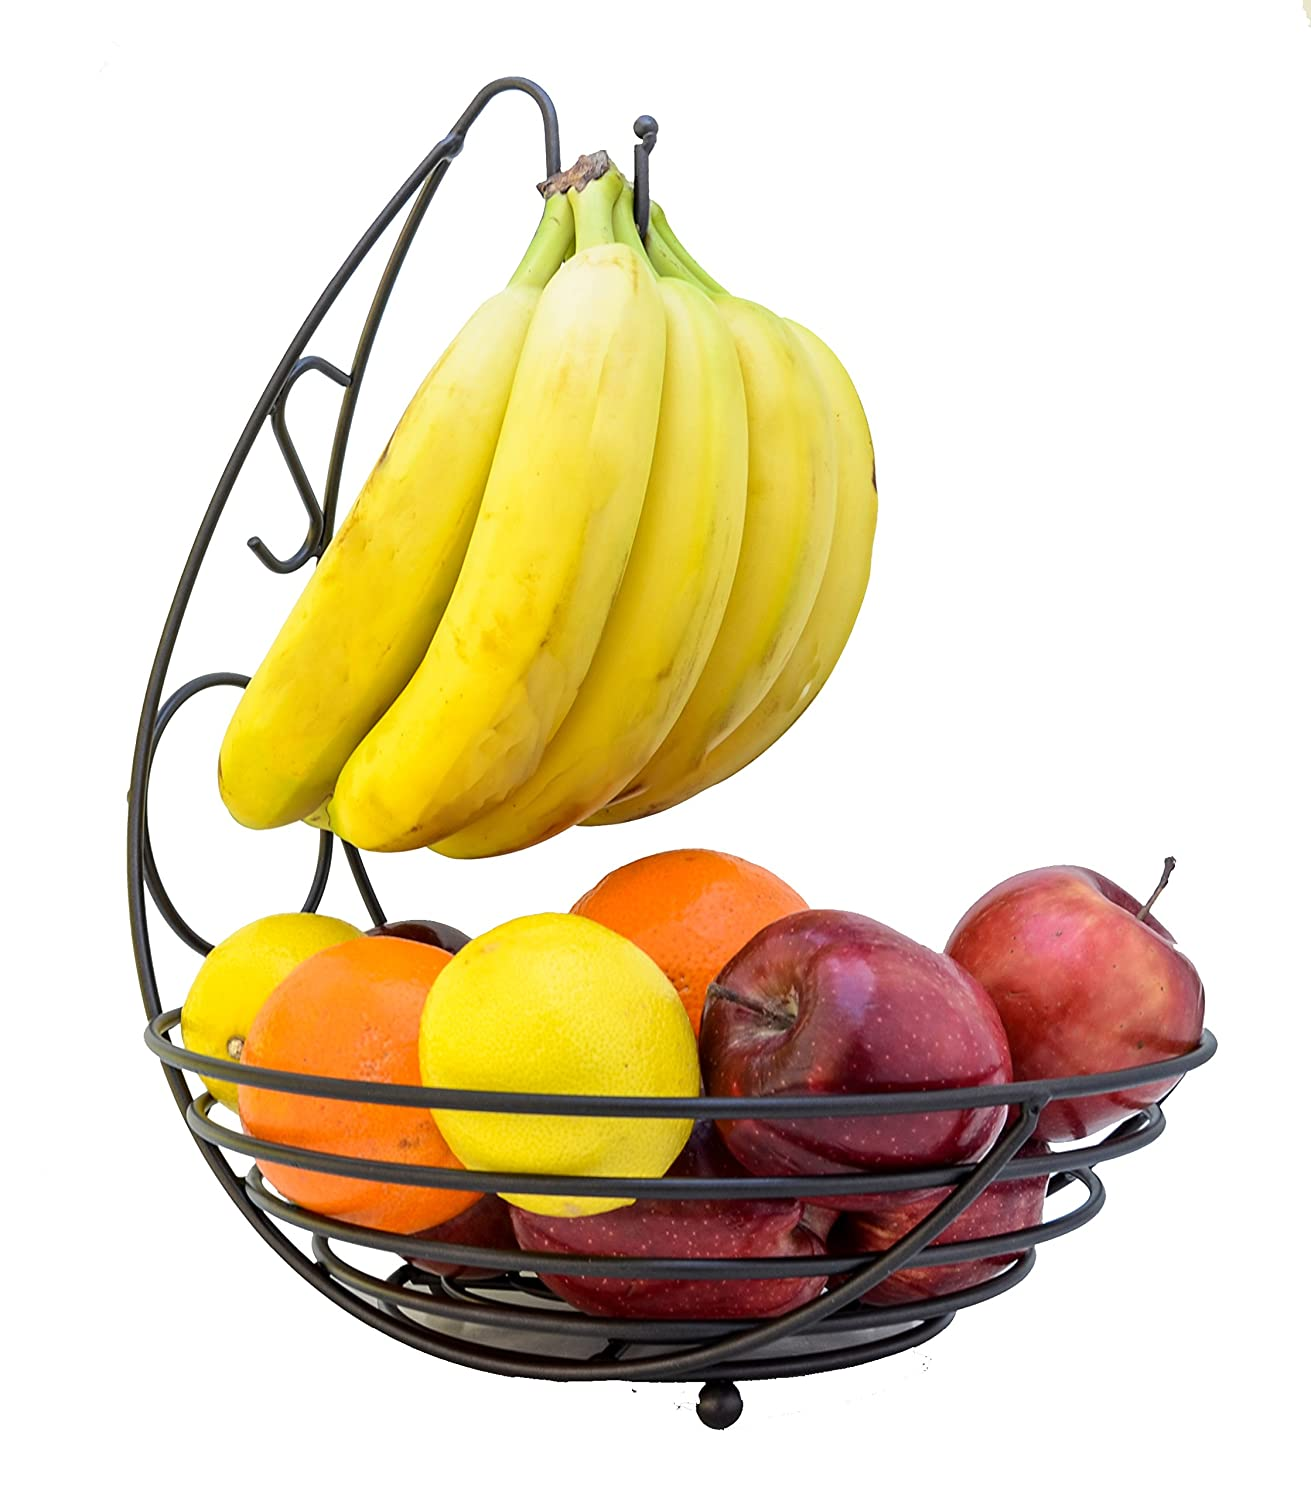 Premium Heavy-Duty Metal Fruit Bowl Basket with Banana Hanger, Color: Black Maypes COMINHKPR122470